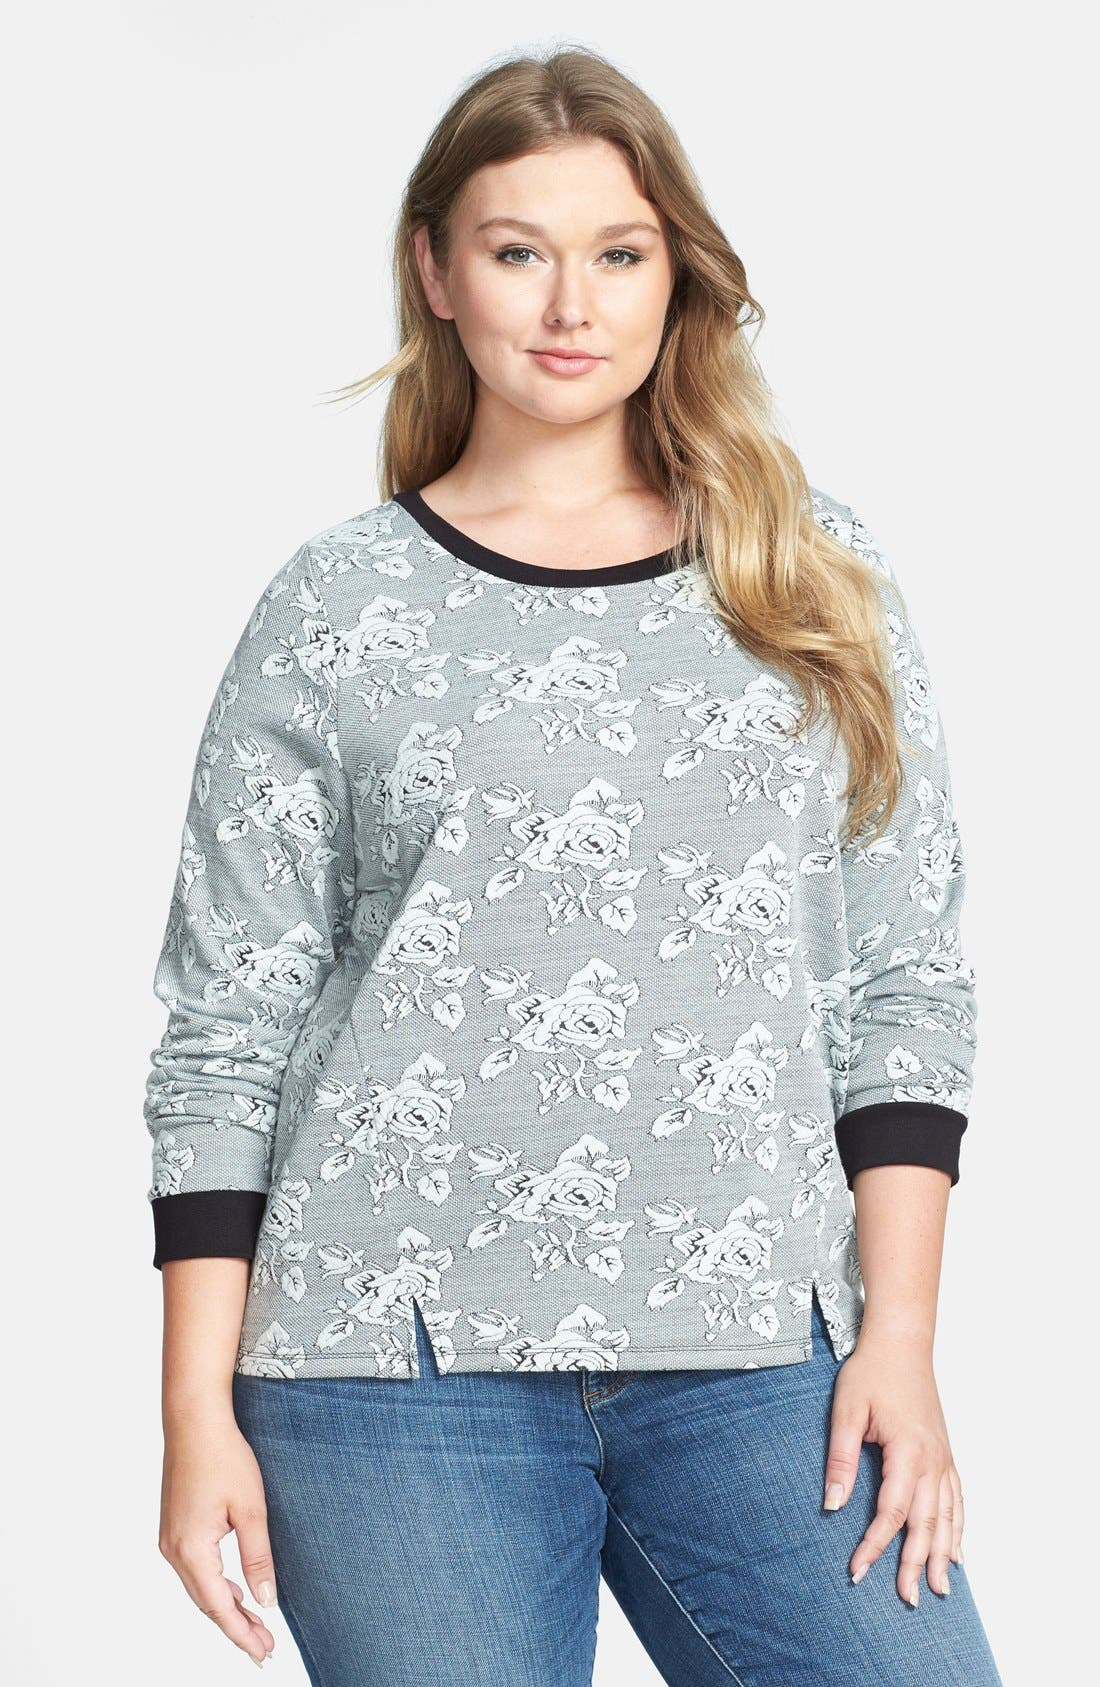 Main Image - BB Dakota 'Davi Rose' Jacquard Sweatshirt (Plus Size)